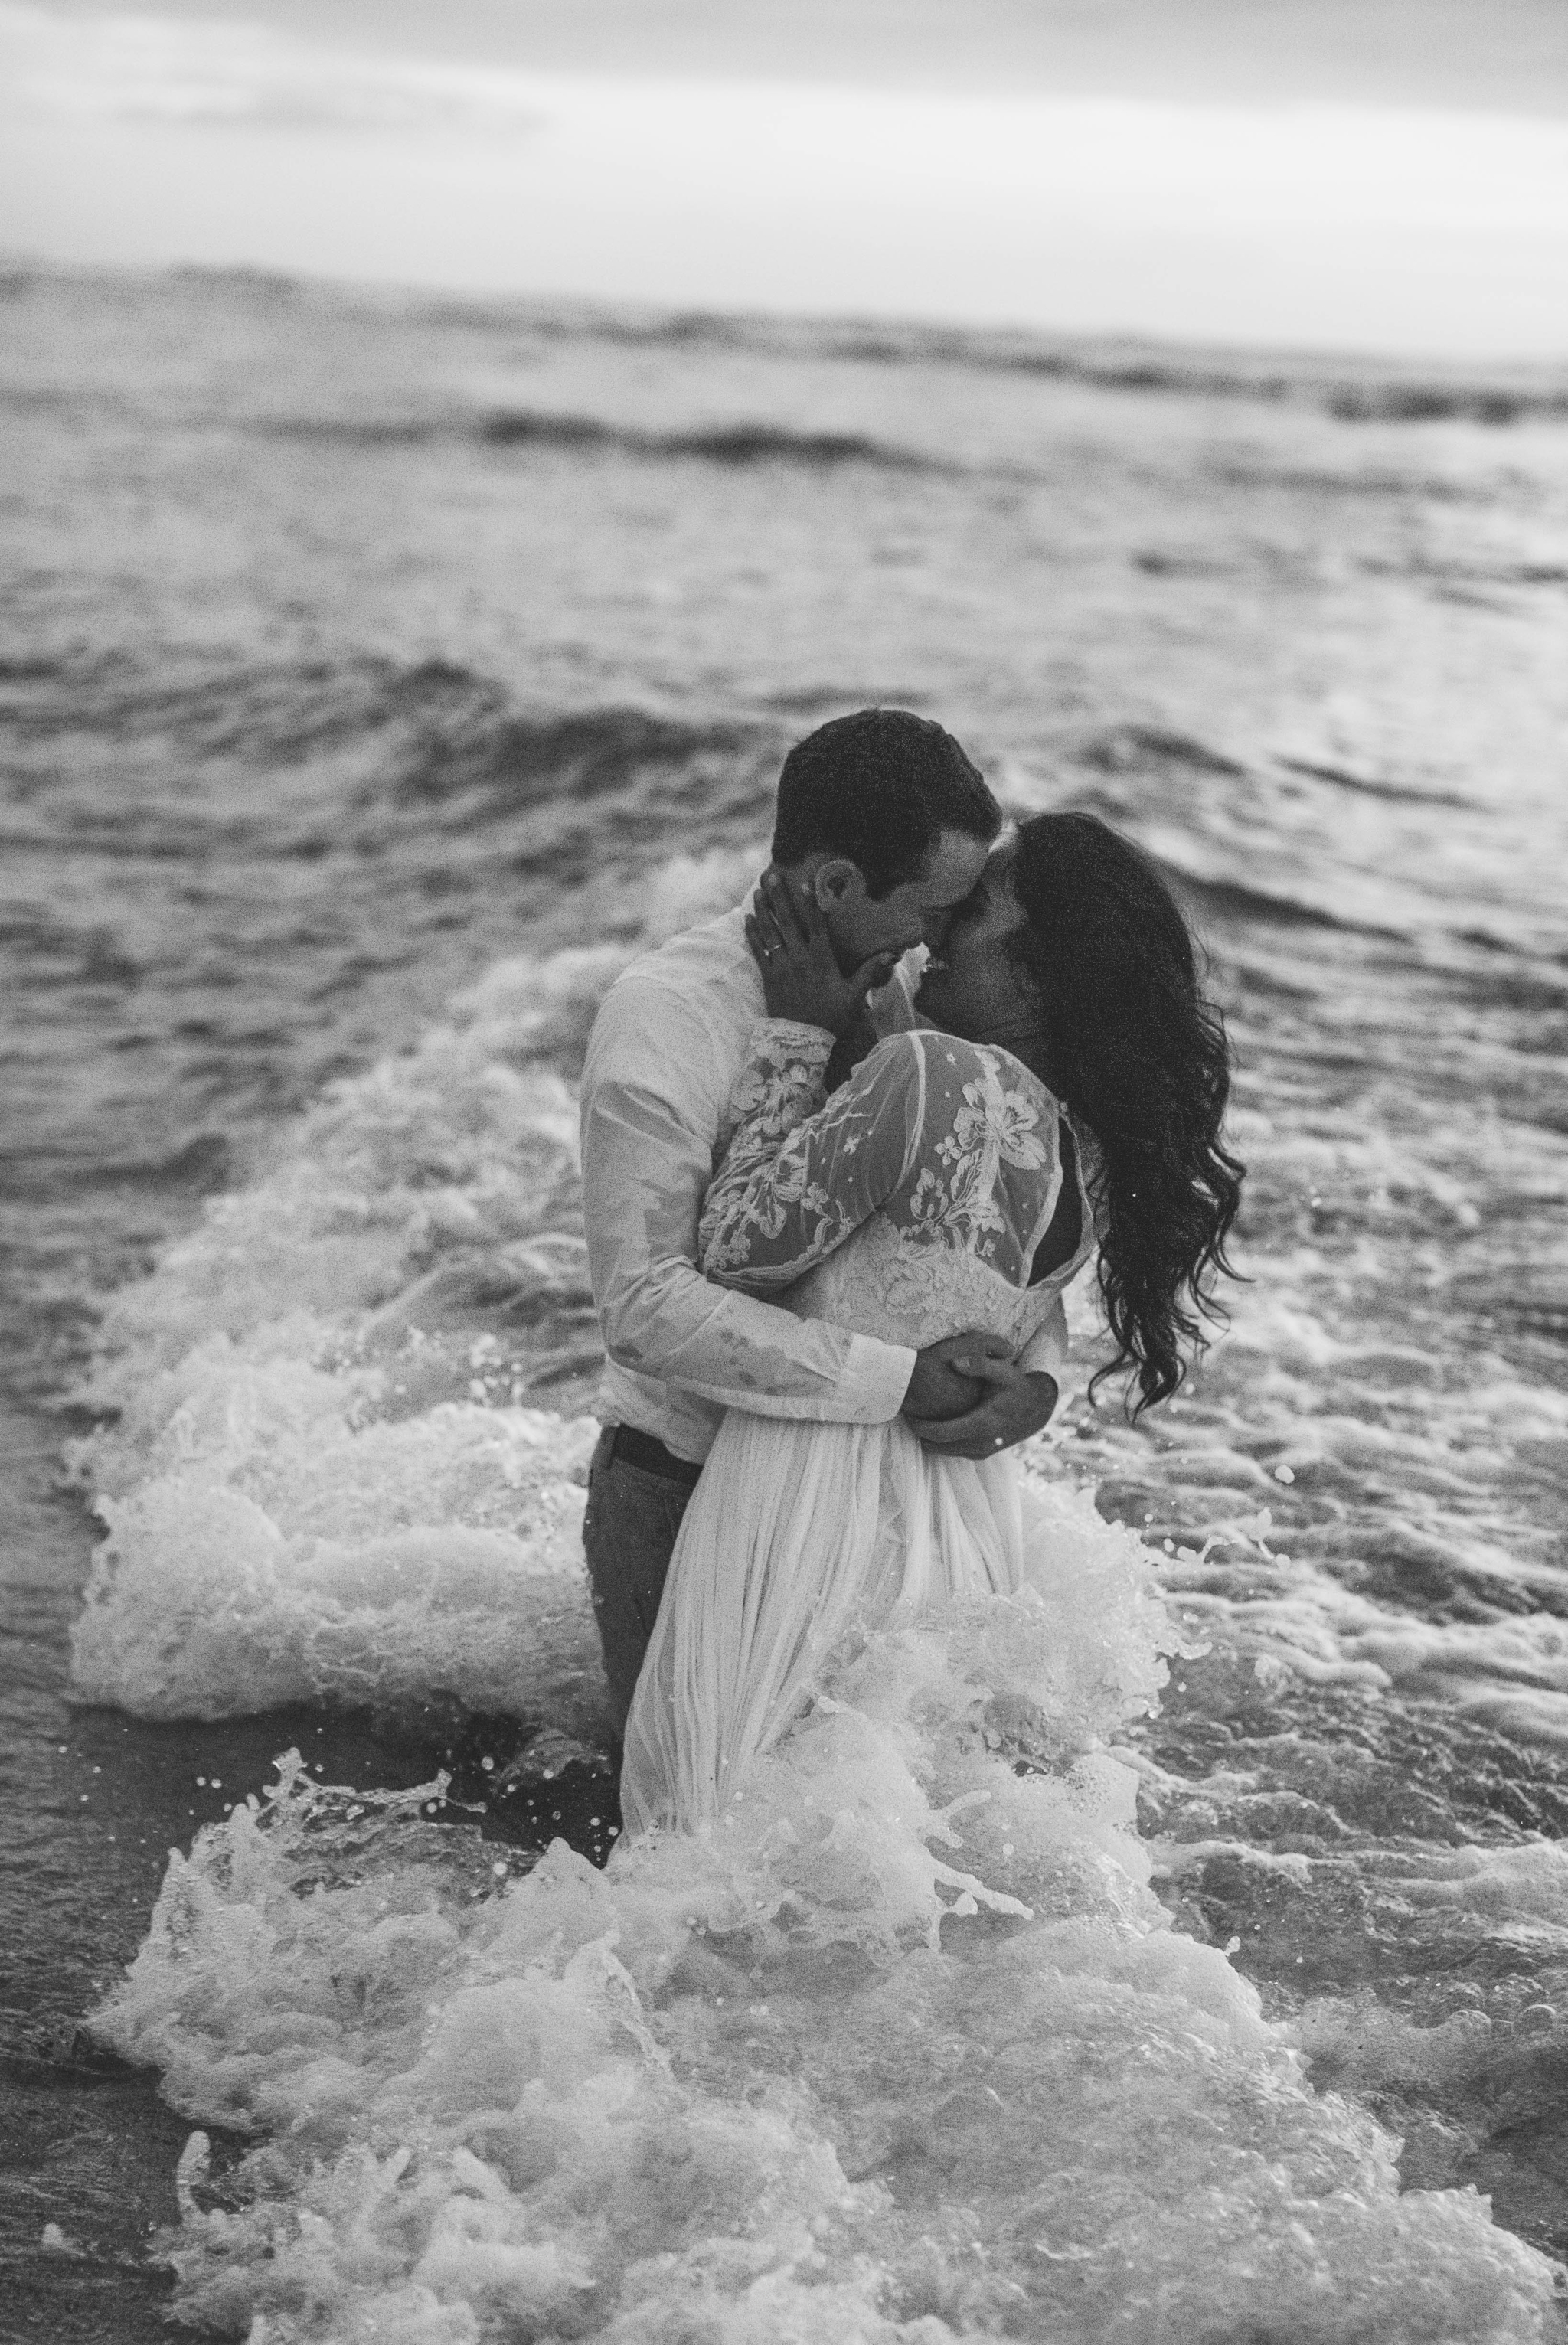 Bride and Groom in the ocean black and white - Wedding Portraits at Sunset in Hawaii - Ana + Elijah - Wedding at Loulu Palm in Haleiwa, HI - Oahu Hawaii Wedding Photographer - #hawaiiweddingphotographer #oahuweddings #hawaiiweddings